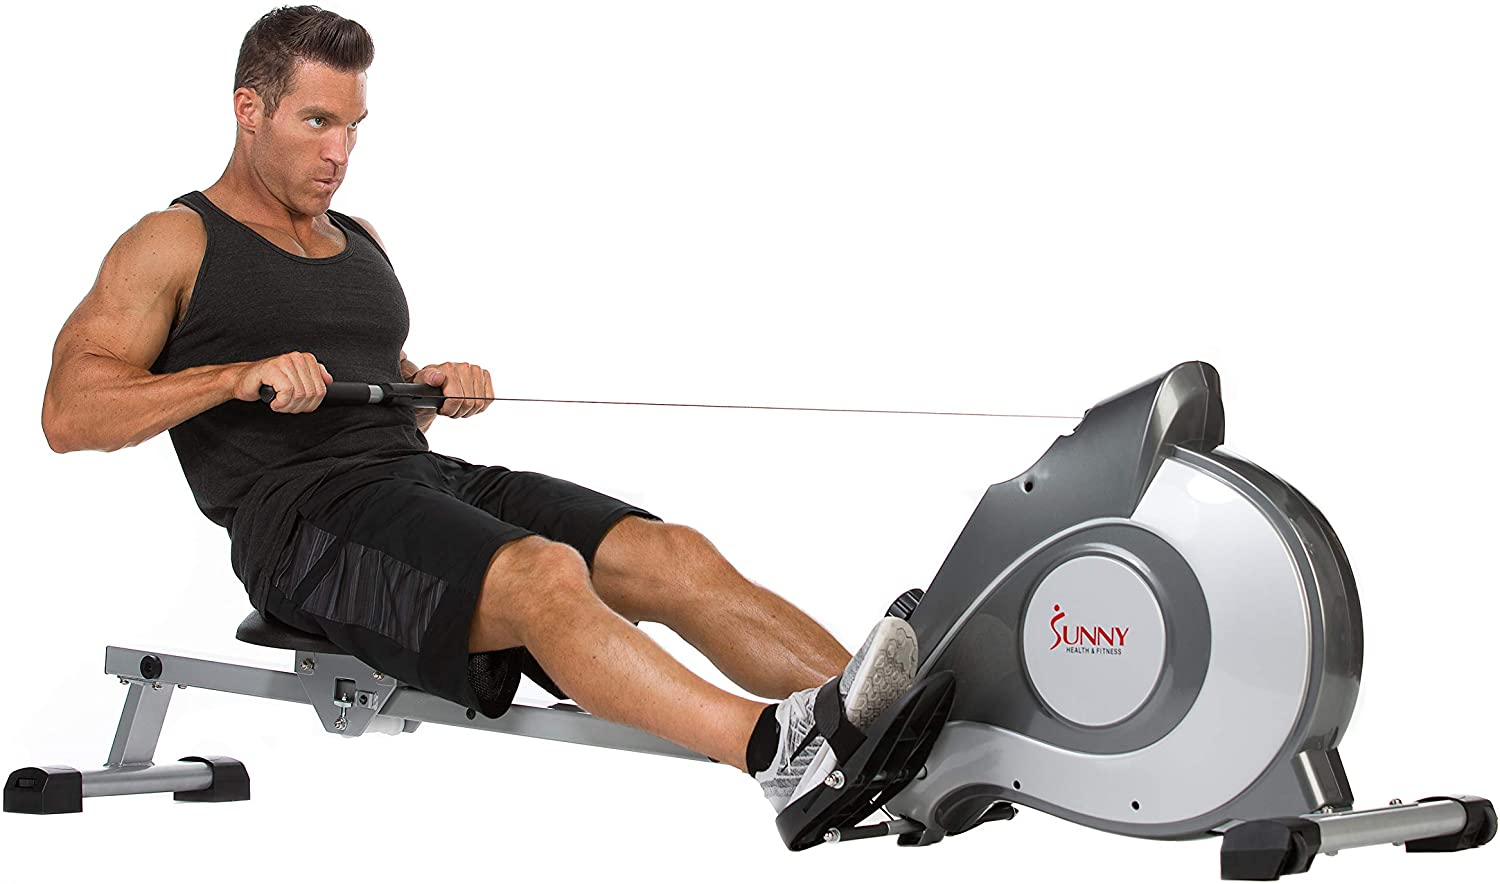 10 best rowing machines for whole body home exercise 2021 herstylecode 10 Best Rowing Machines for Whole Body Home Exercise 2021